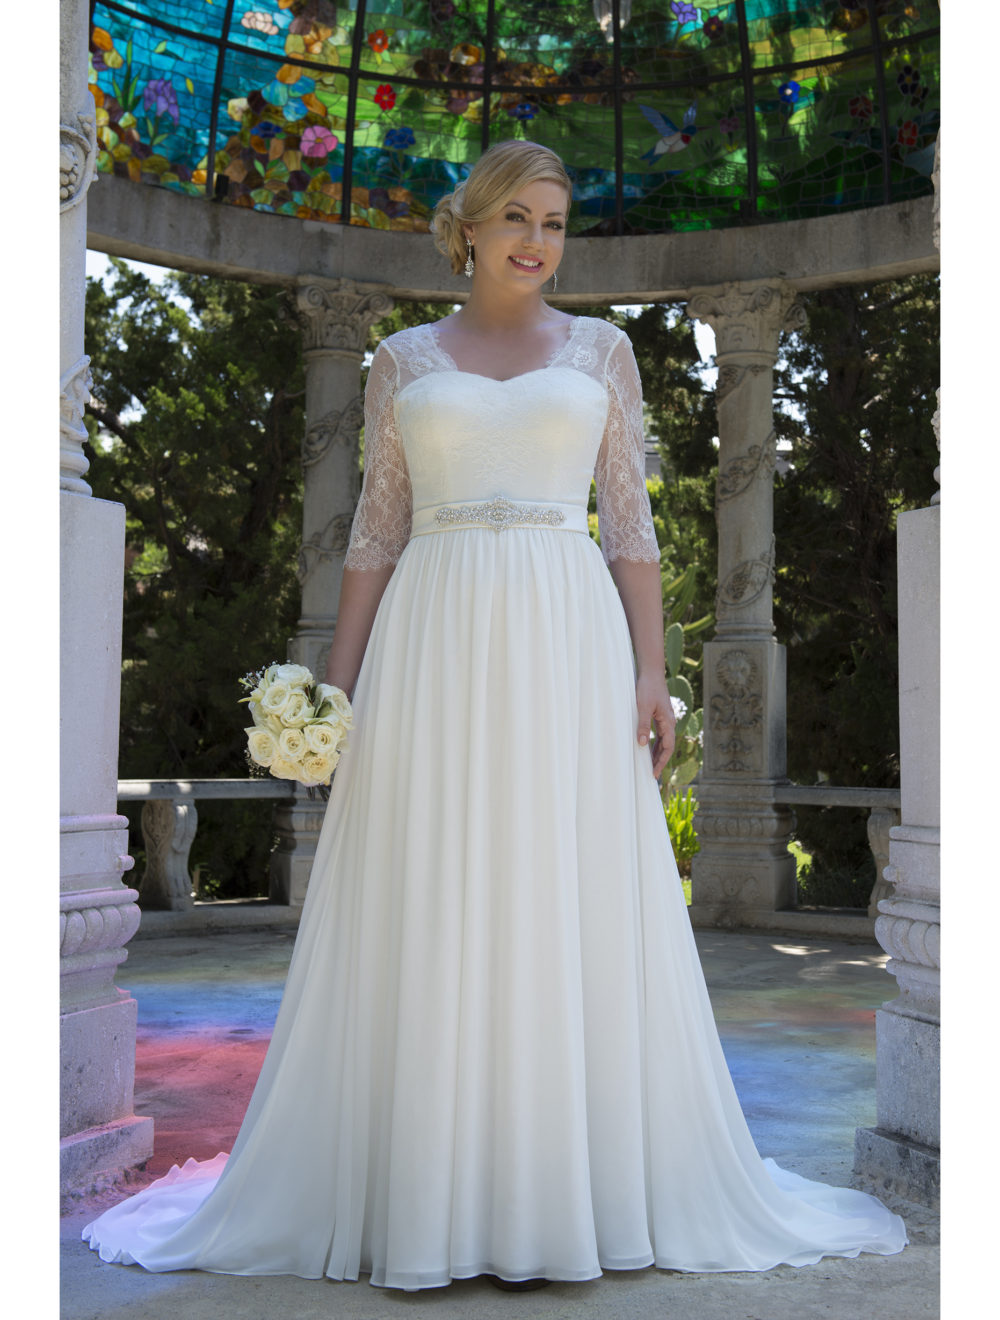 US $116.76 30% OFF|Informal Modest Plus Size Wedding Dresses With 3/4  Sleeves 2019 Big Size Lace Chiffon Reception Bridal Gowns Country  Western-in ...